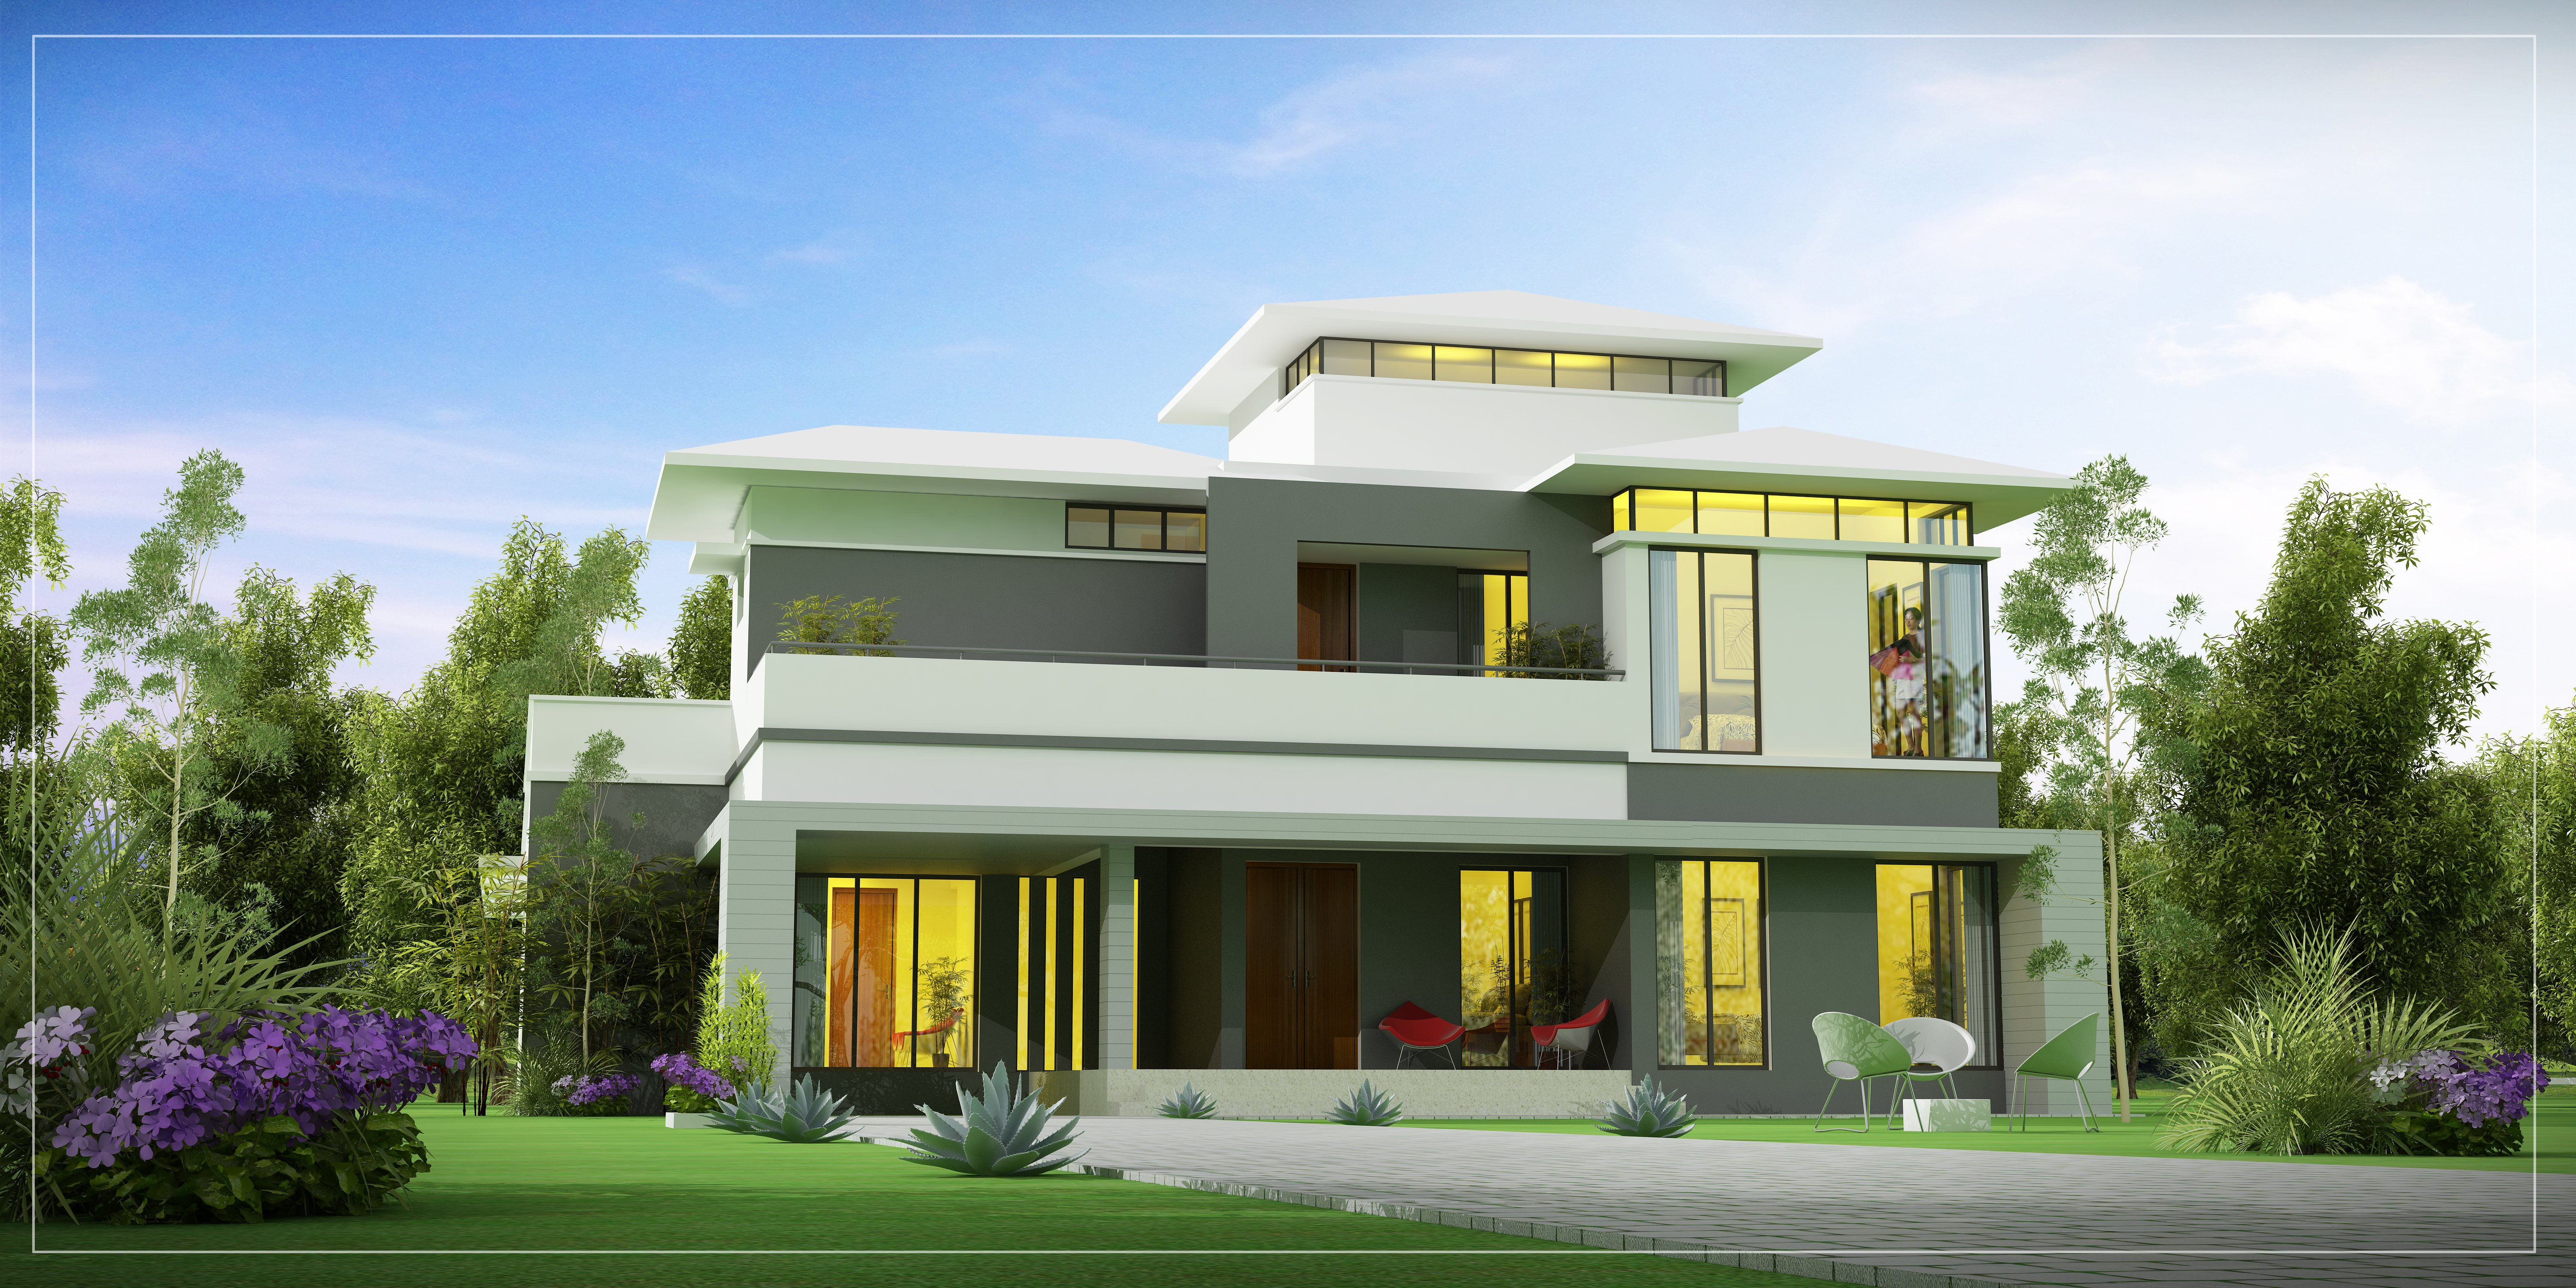 Mansion house architecture luxury building design for Villas apartments